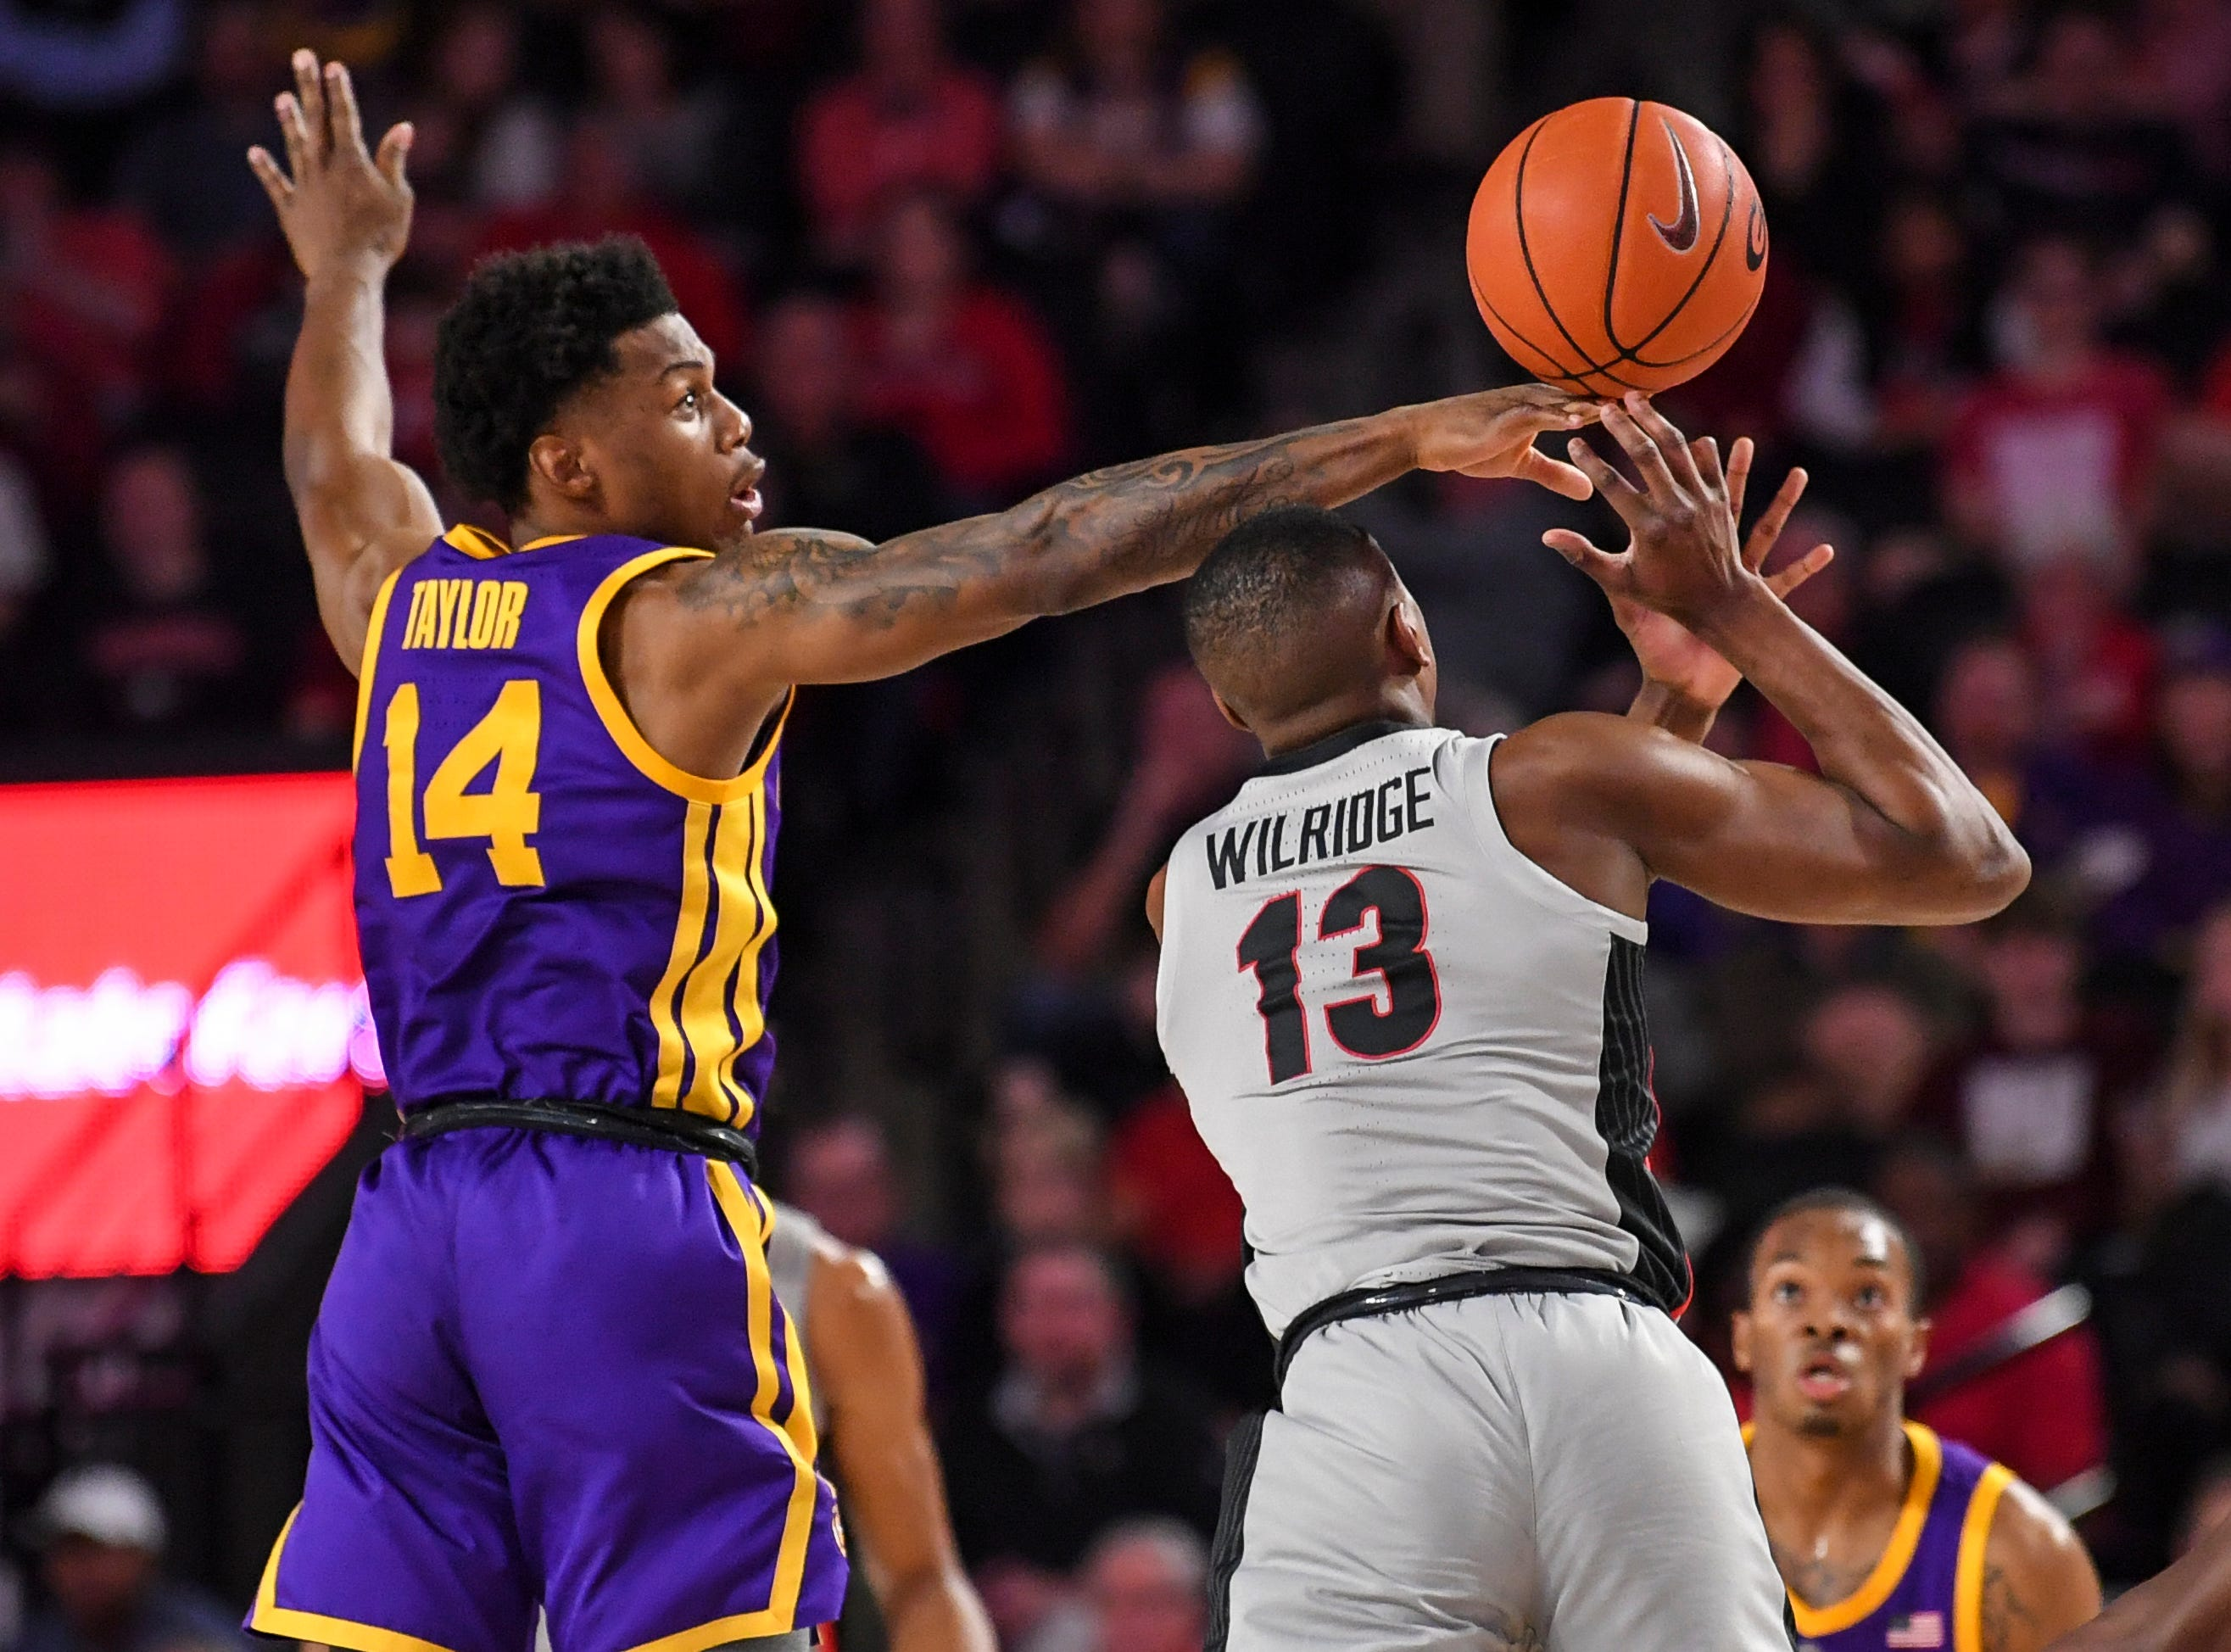 Feb 16, 2019; Athens, GA, USA; Georgia Bulldogs forward E'Torrion Wilridge (13) is fouled by LSU Tigers guard Marlon Taylor (14) during the second half at Stegeman Coliseum. Mandatory Credit: Dale Zanine-USA TODAY Sports